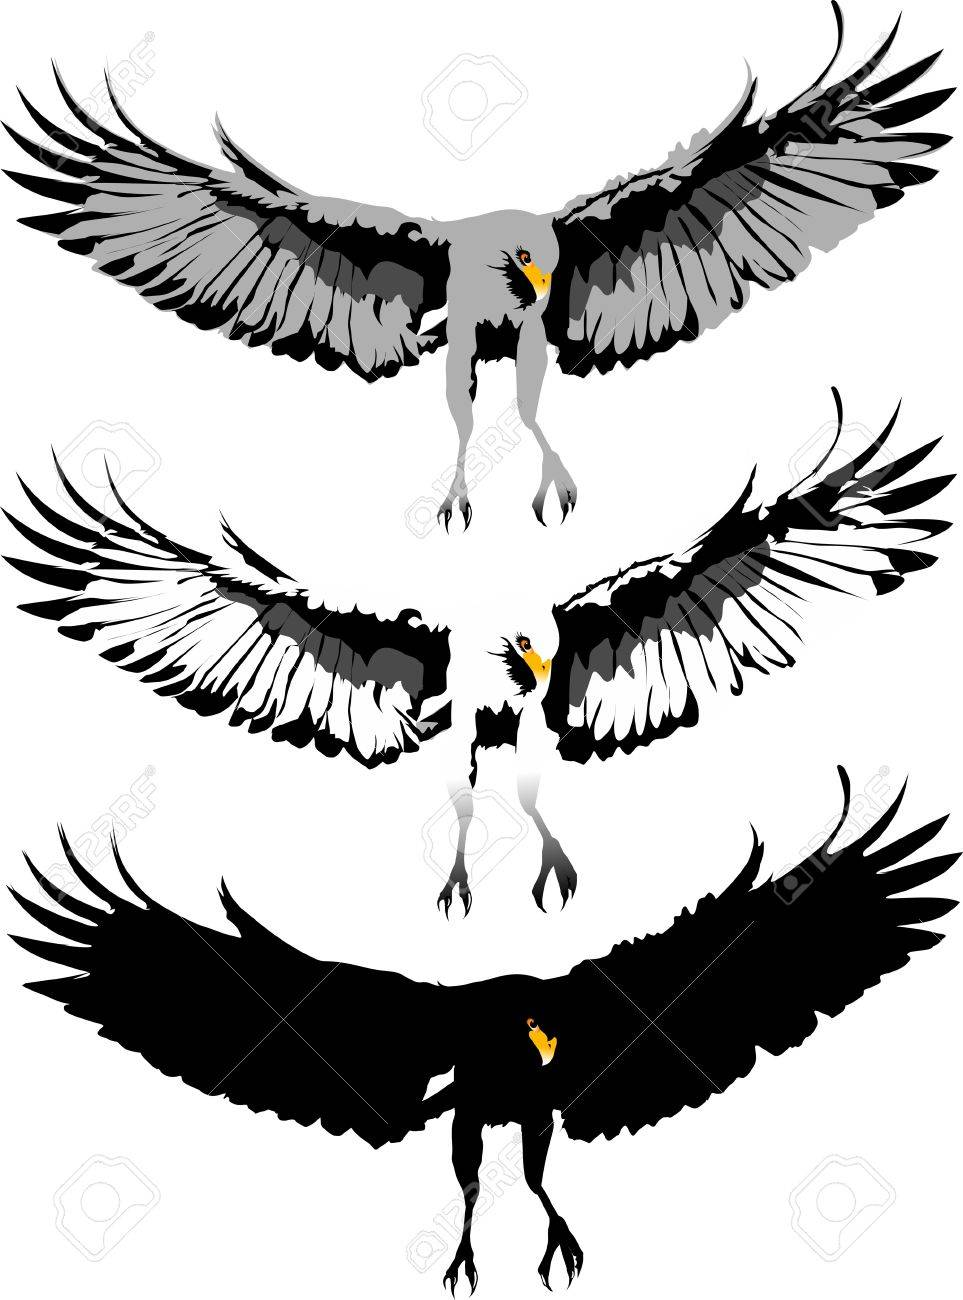 Eagle Claws Clipart Eagle Claws